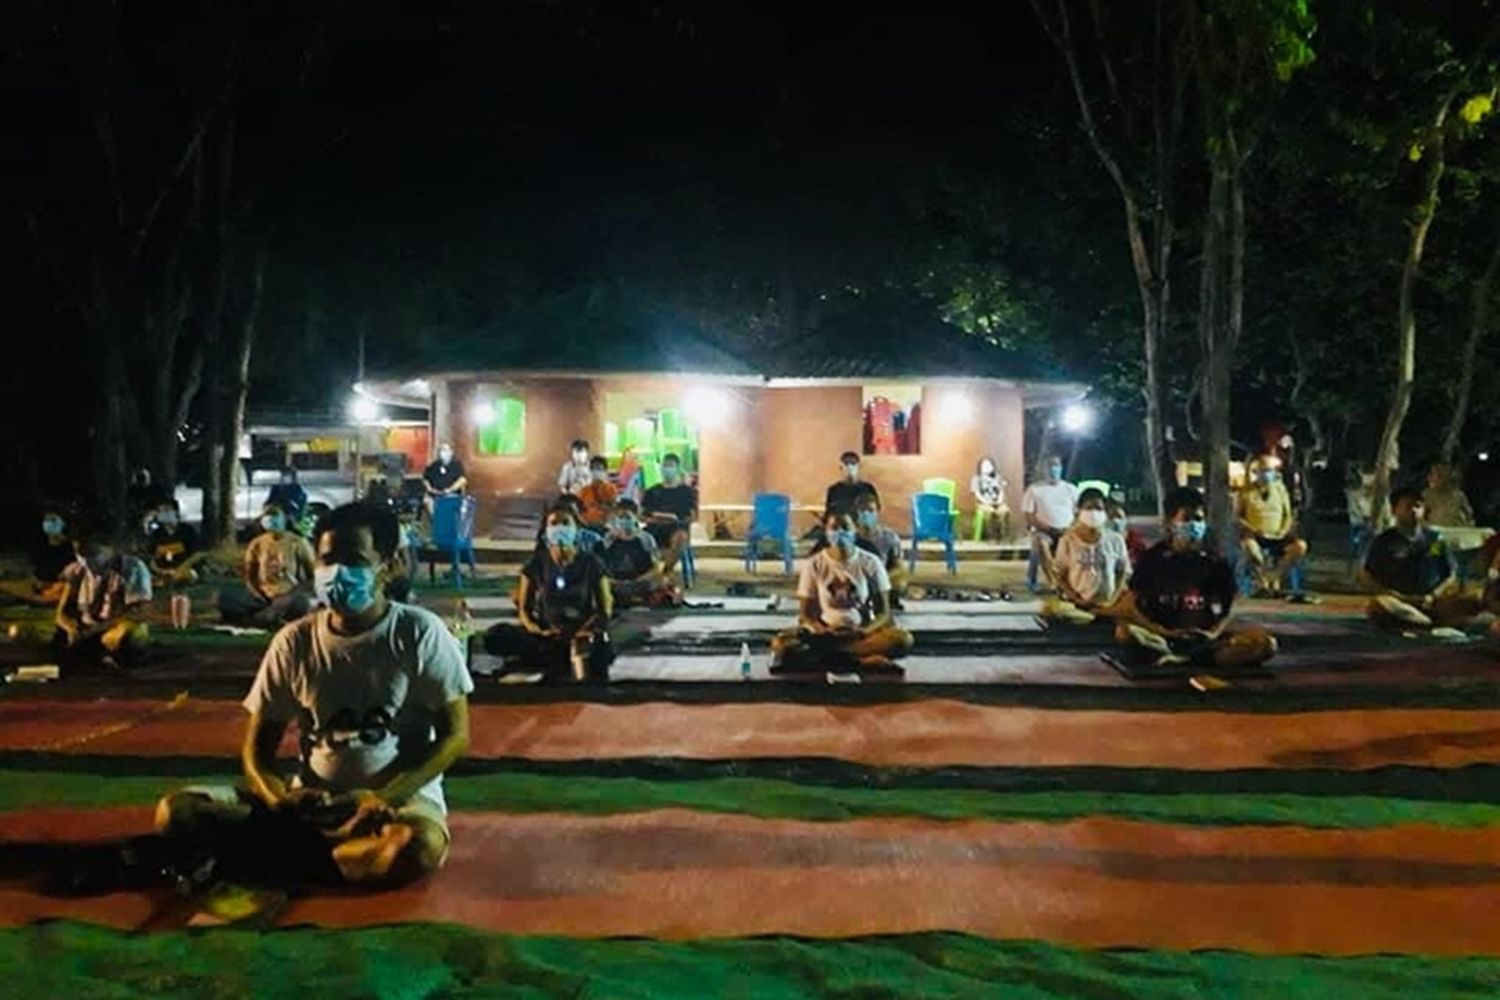 Thais from Cambodia meditate at the Pa Mok Dhammaram Buddhist centre, a place designated for state quarantine in Aranyaprathet district, Sa Kaeo province, on Sunday night. (Photo from Sawat Kate-ngam)